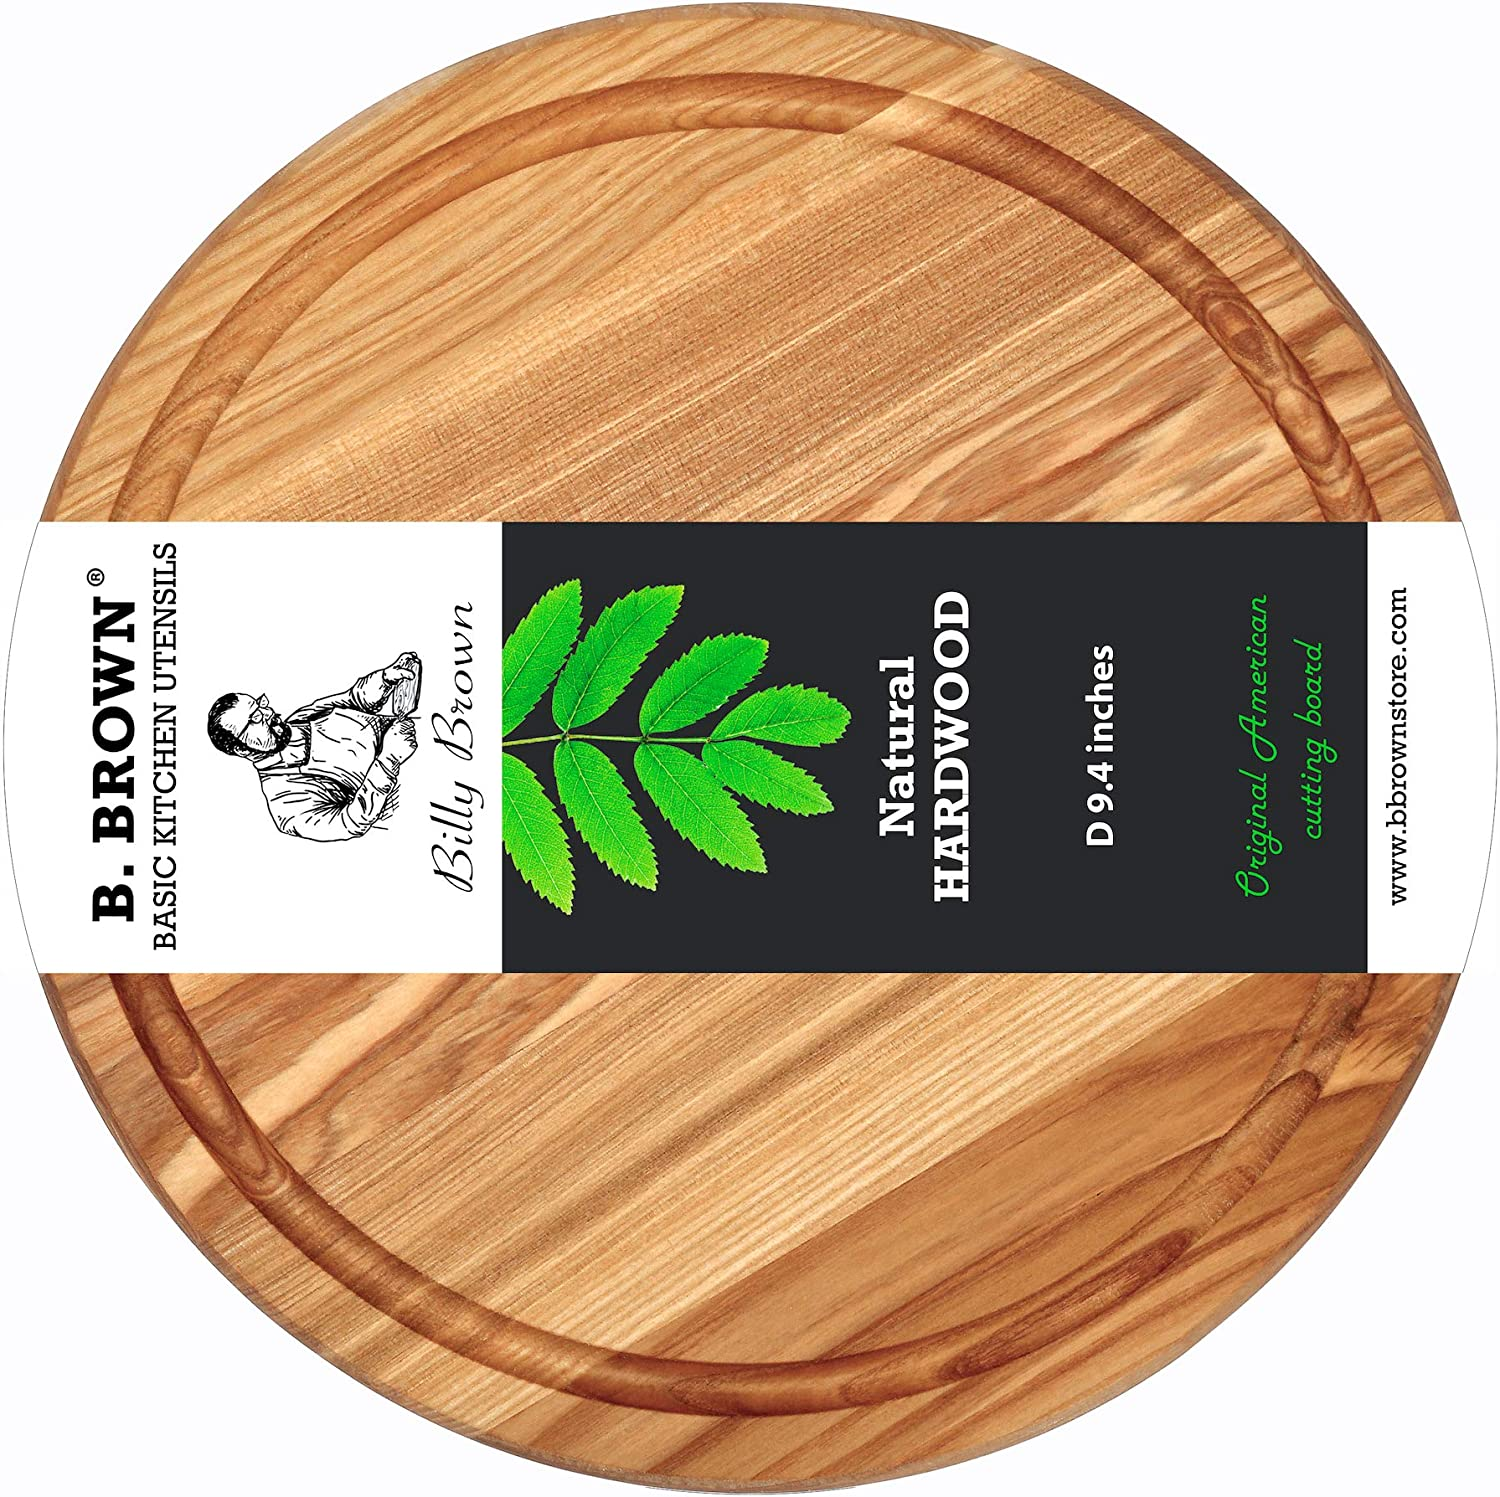 Wood Cutting Board 9.4 inches by B.Brown Small Round Cutting Board Great for Serving Tray and Chopping Board Great for Gift